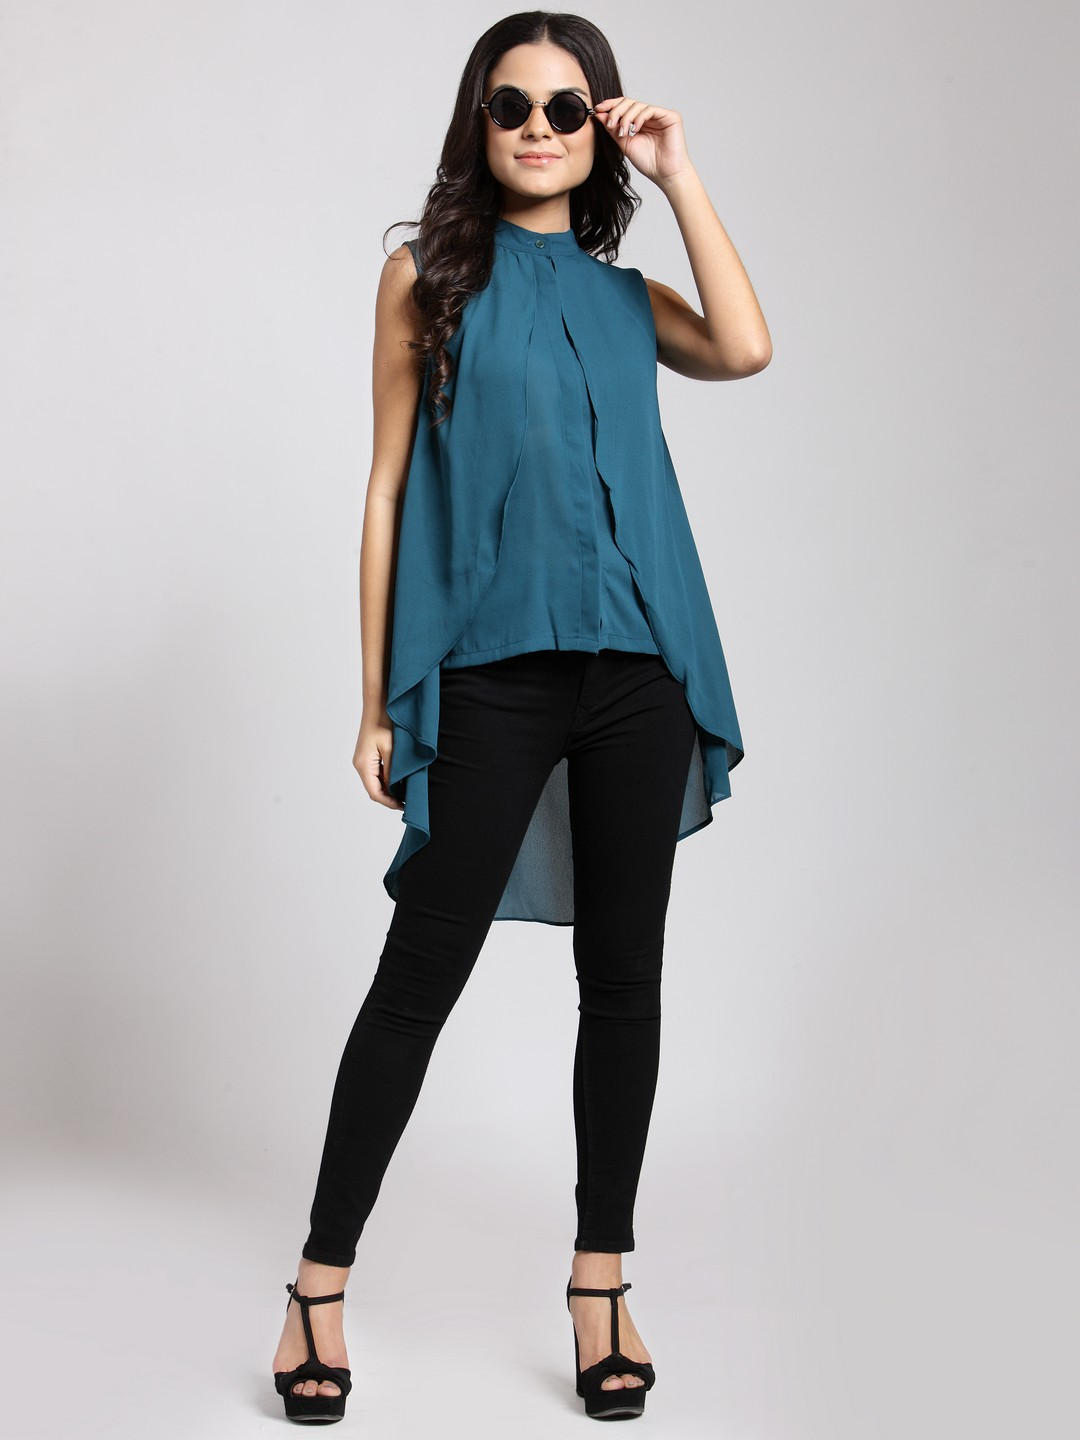 18-types-of-tops-Women-Teal-Solid-High-Low-Top